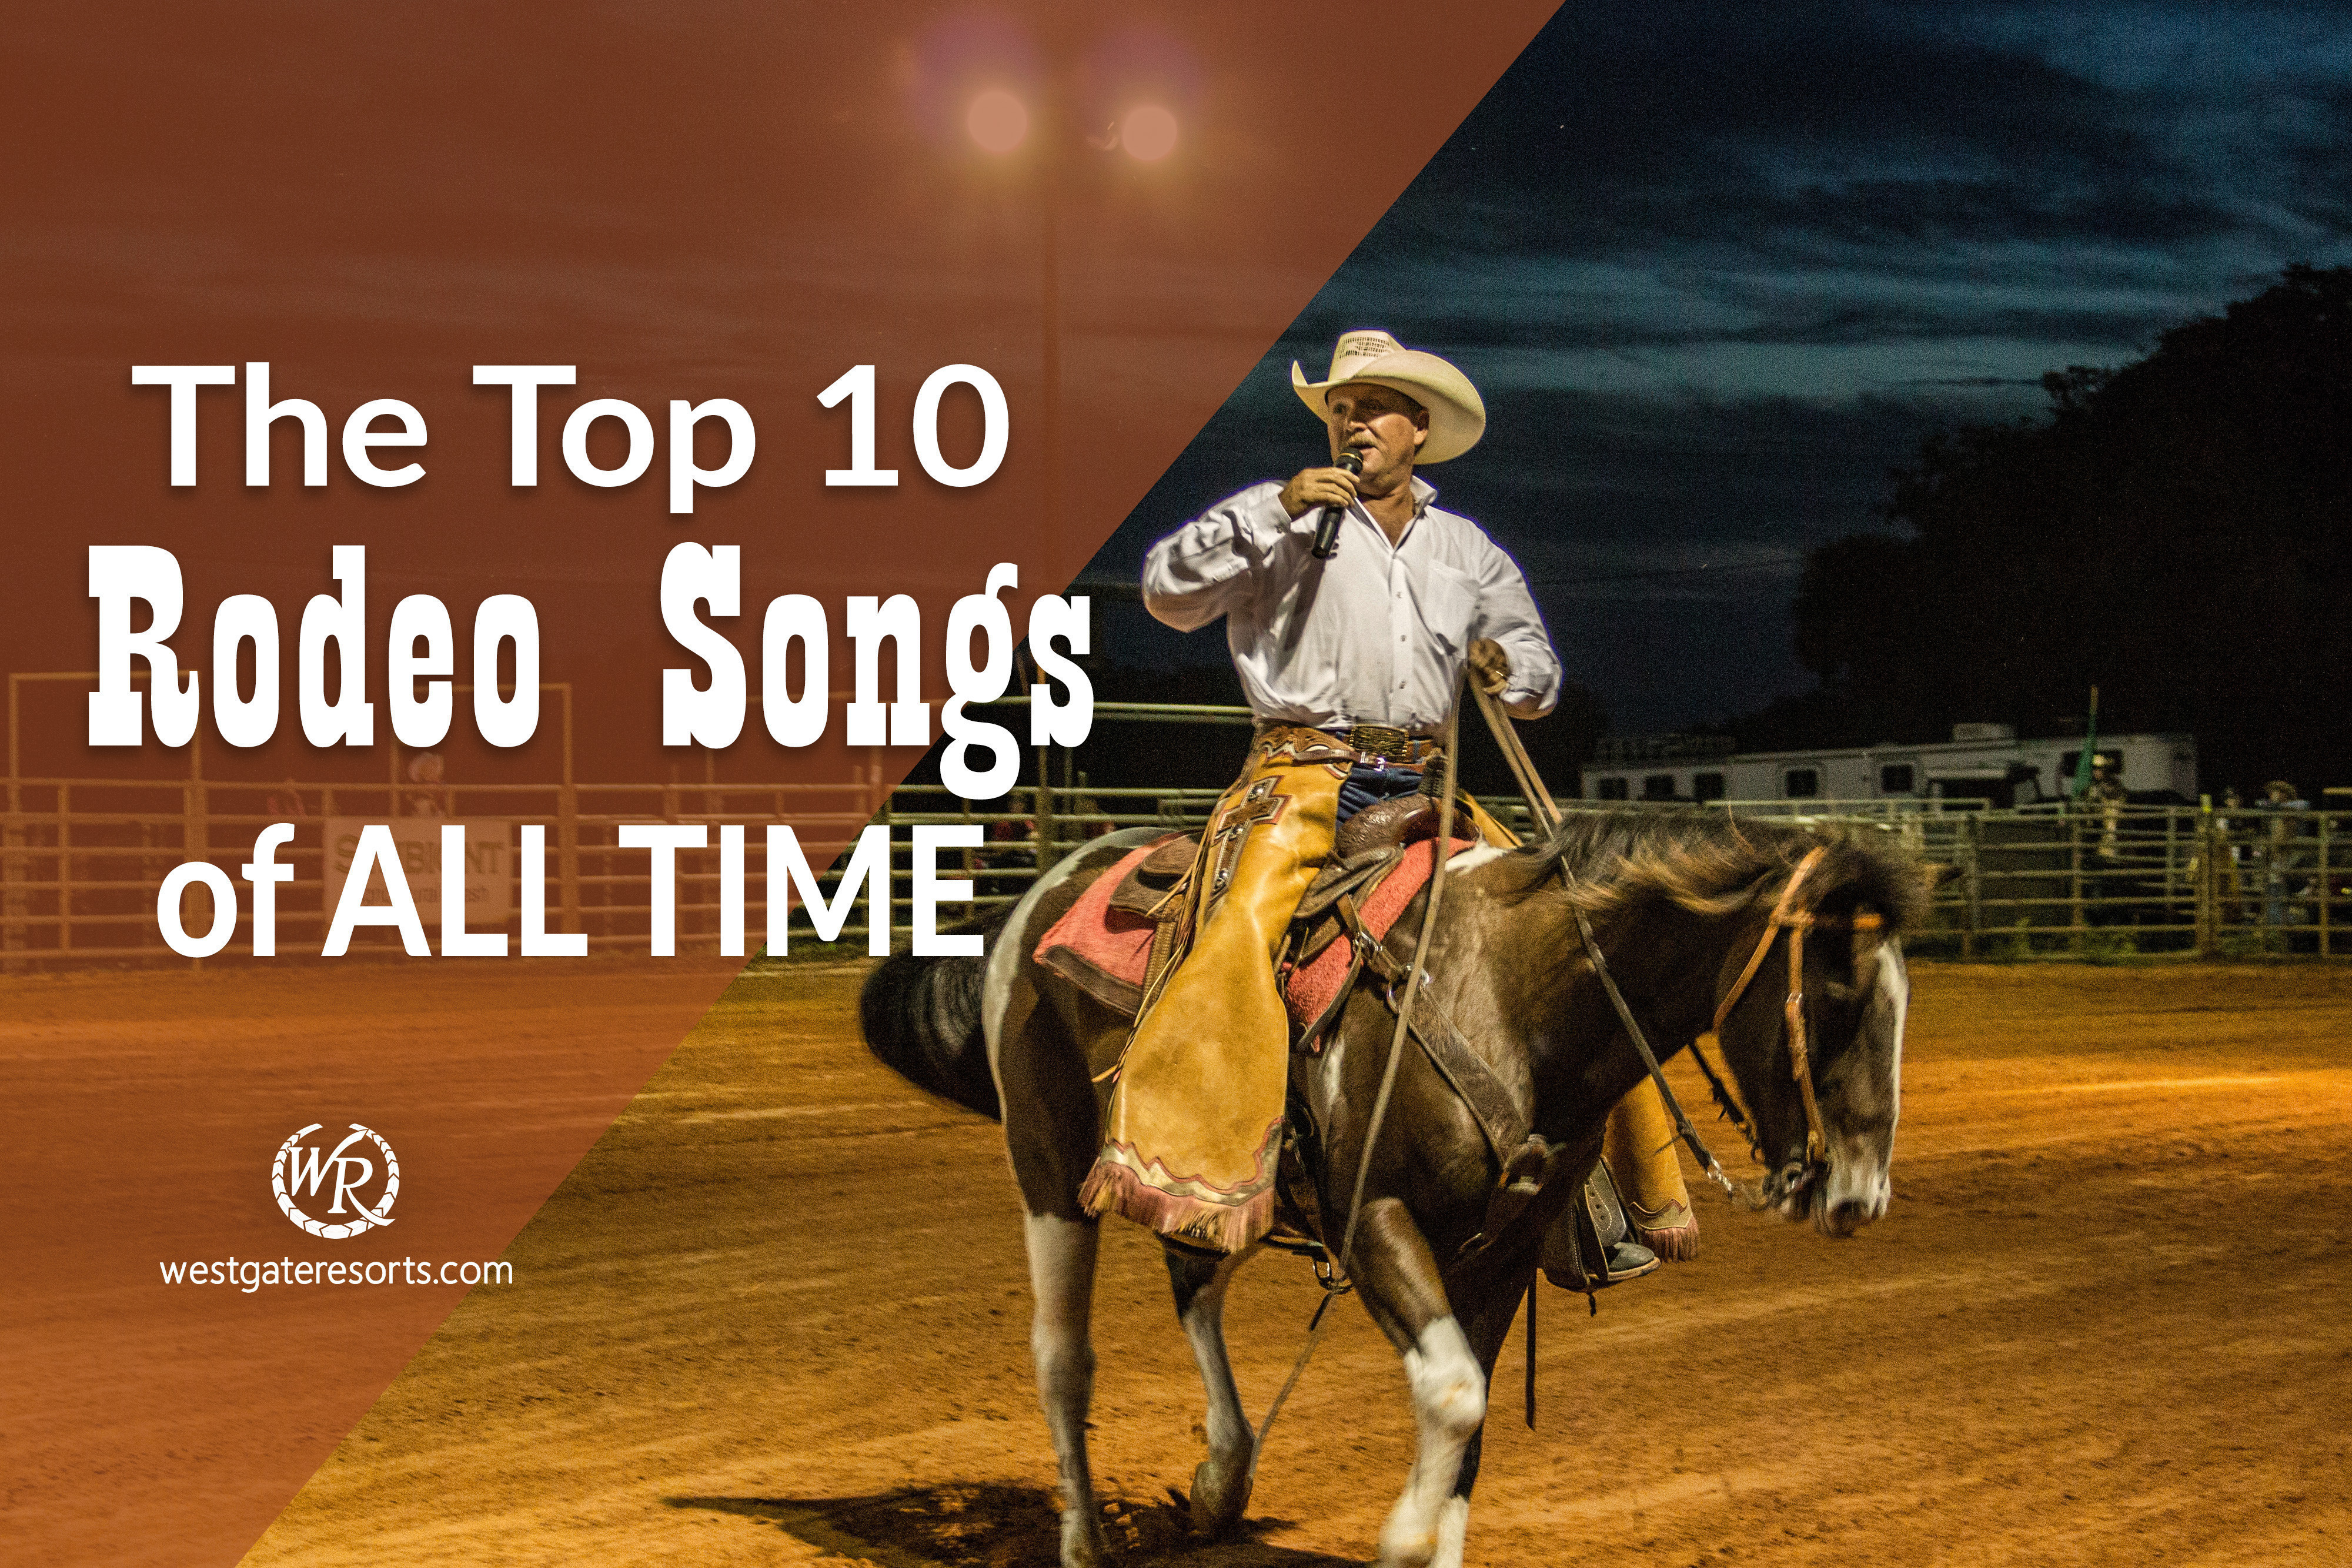 The Top 10 Rodeo Songs of All Time